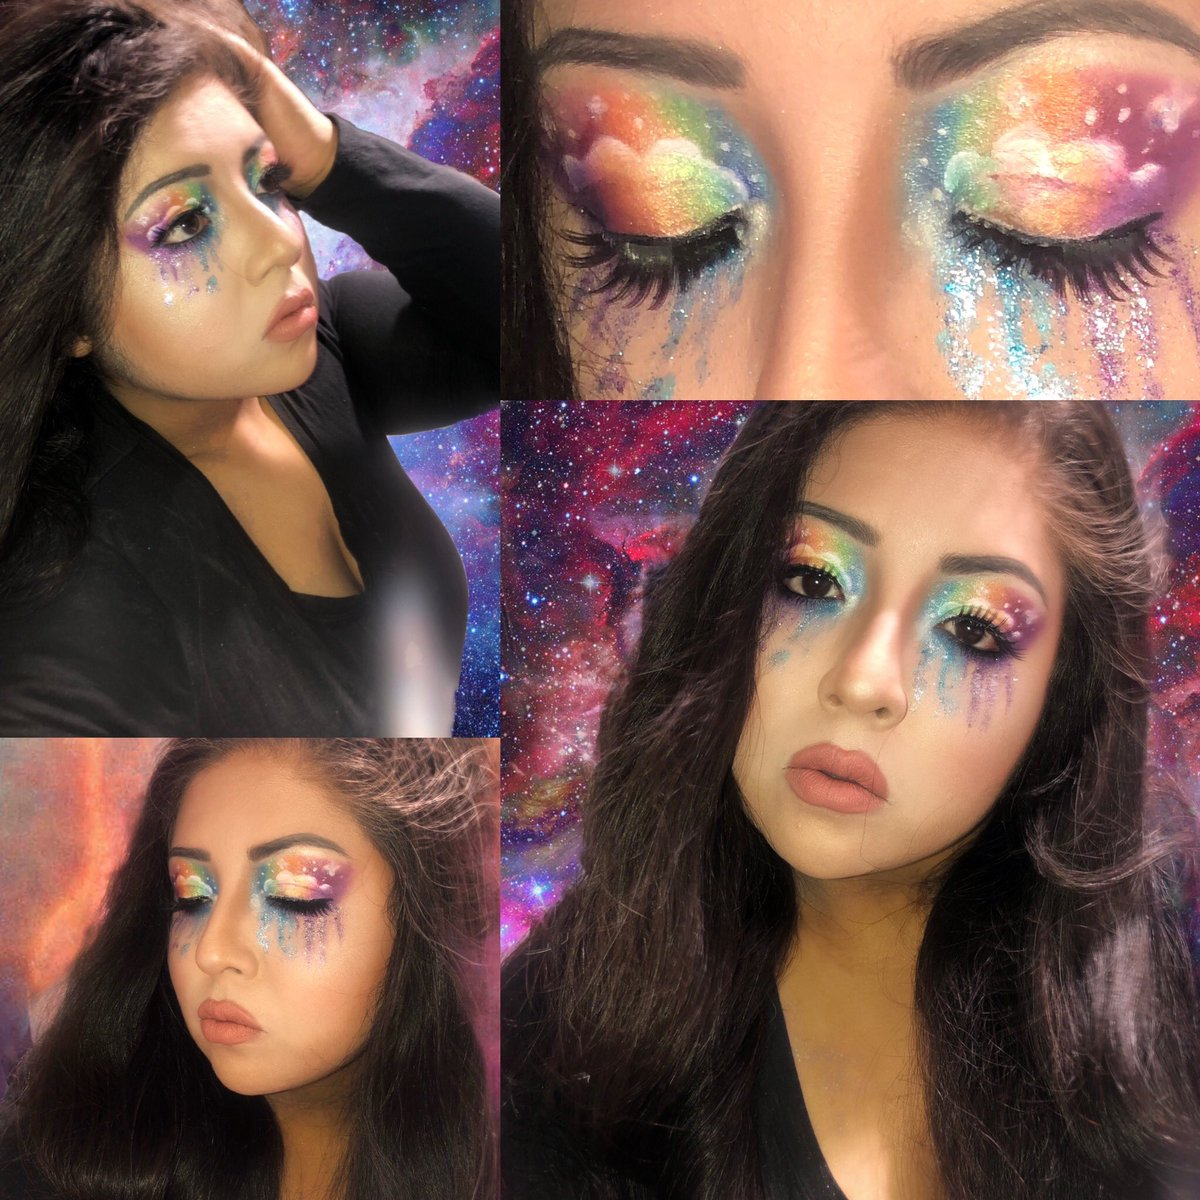 New make up lewk! My anxiety was so bad so I beat my face with rainbows lol Lisa frank much? #MakeupBrushChallenge #makeupartist #makeuplooks #mua #supportmua #makeupchallenge #makeuplisafrank #lisafrank #likeforlike